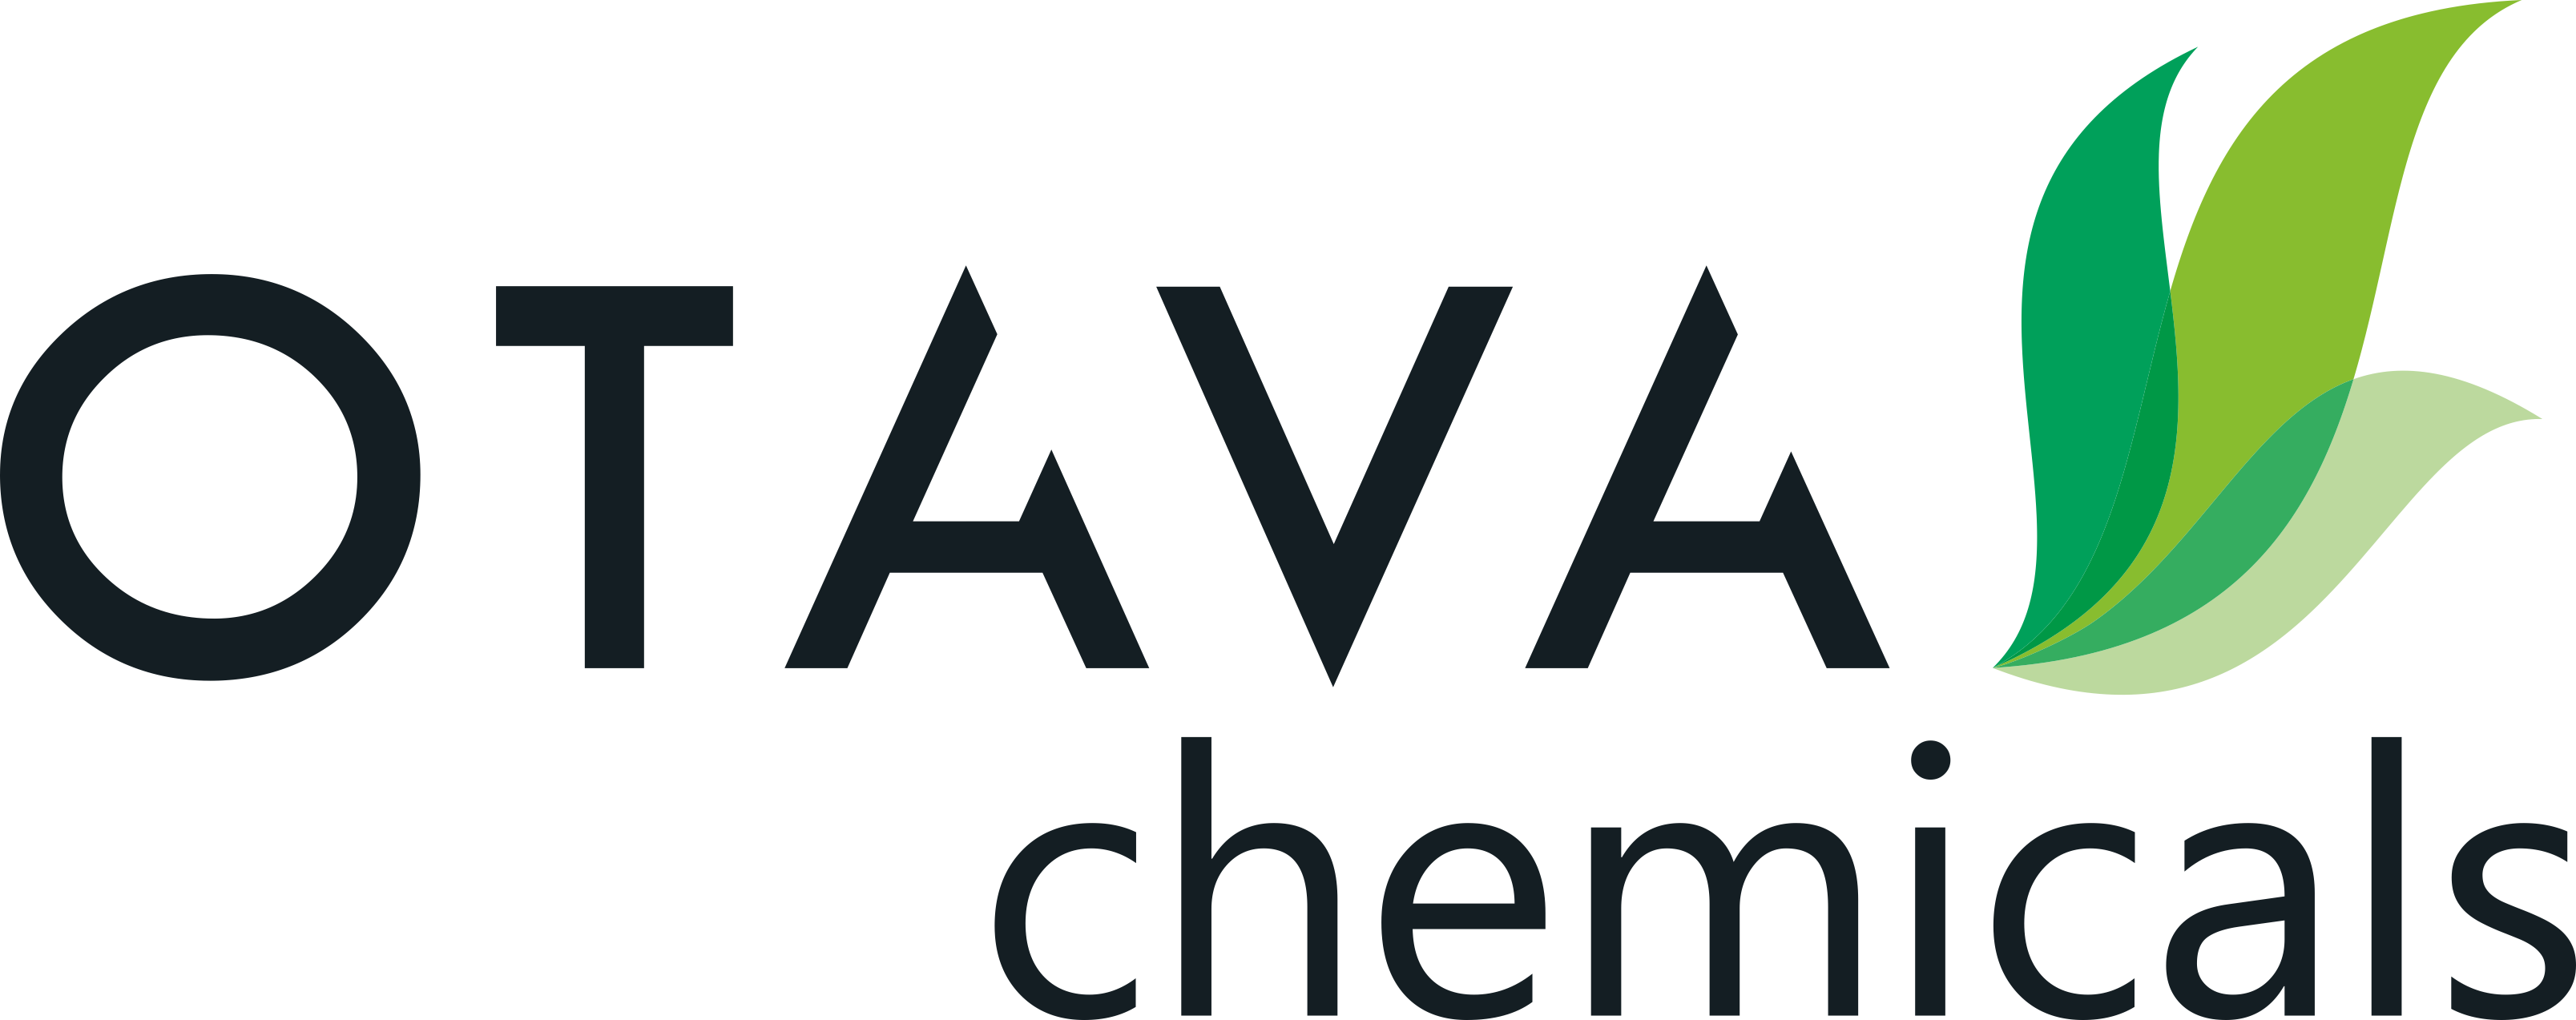 Otava chemicals